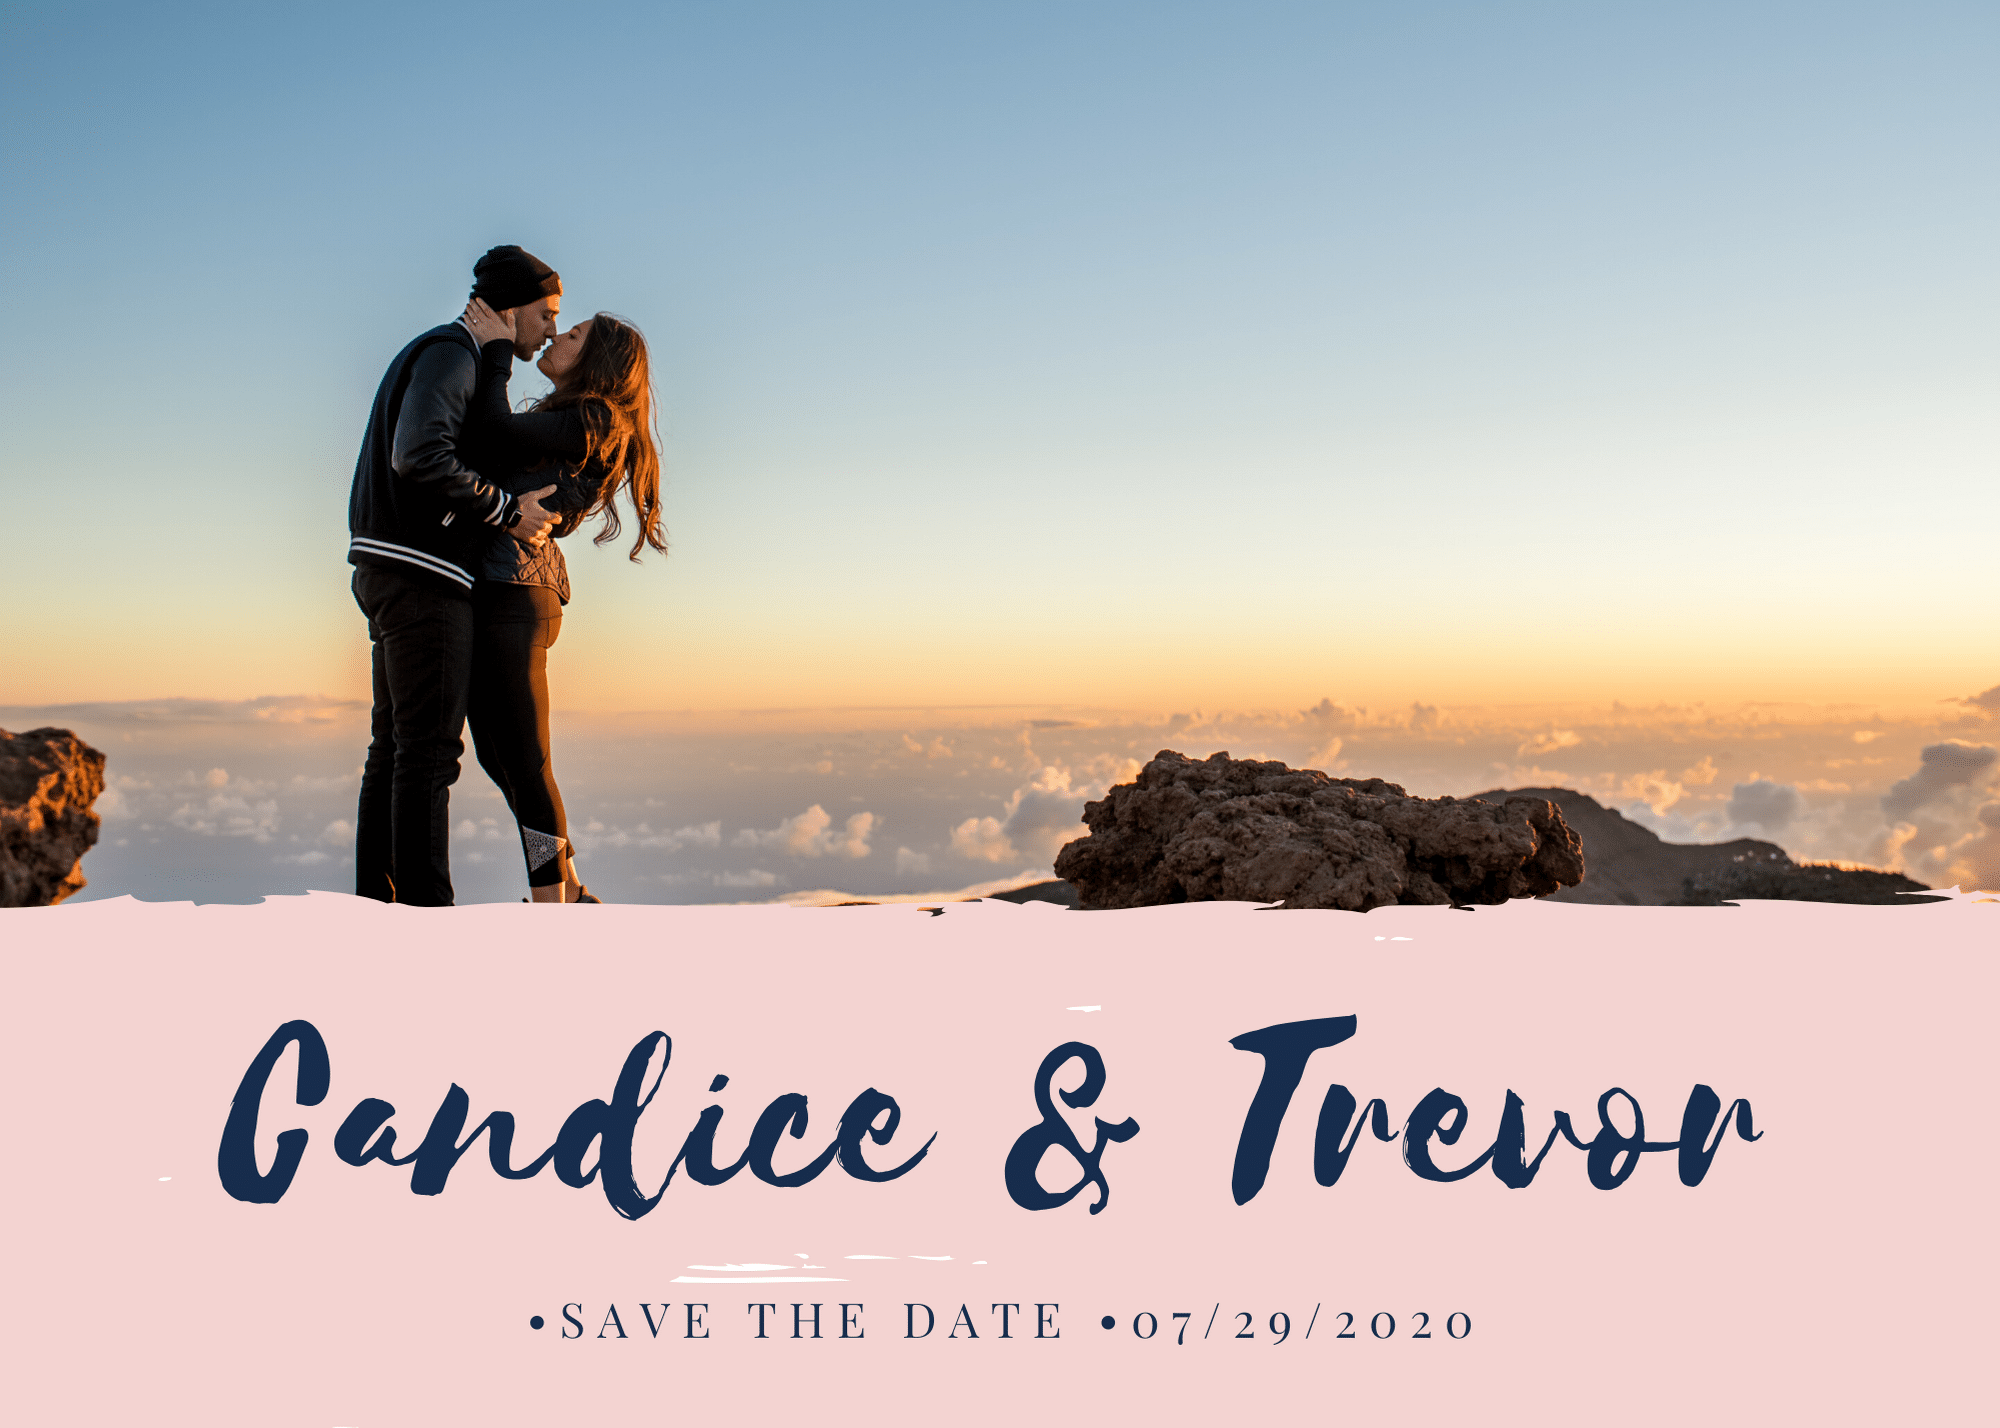 Professional_Proposal_Photographer_Save_The_Date